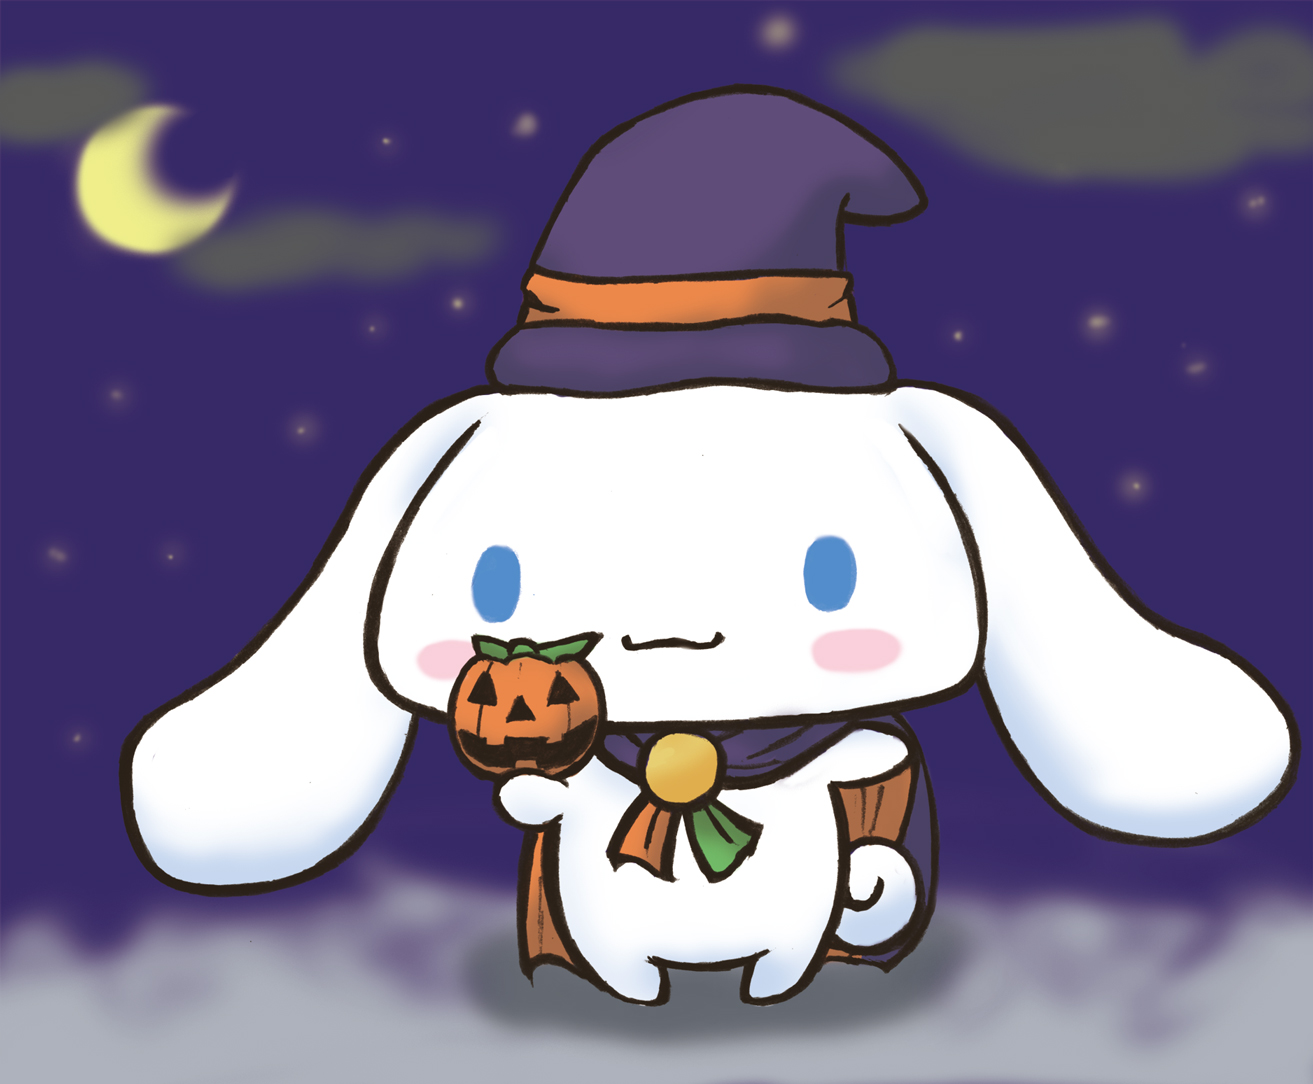 Trick Or Treat - The Bells